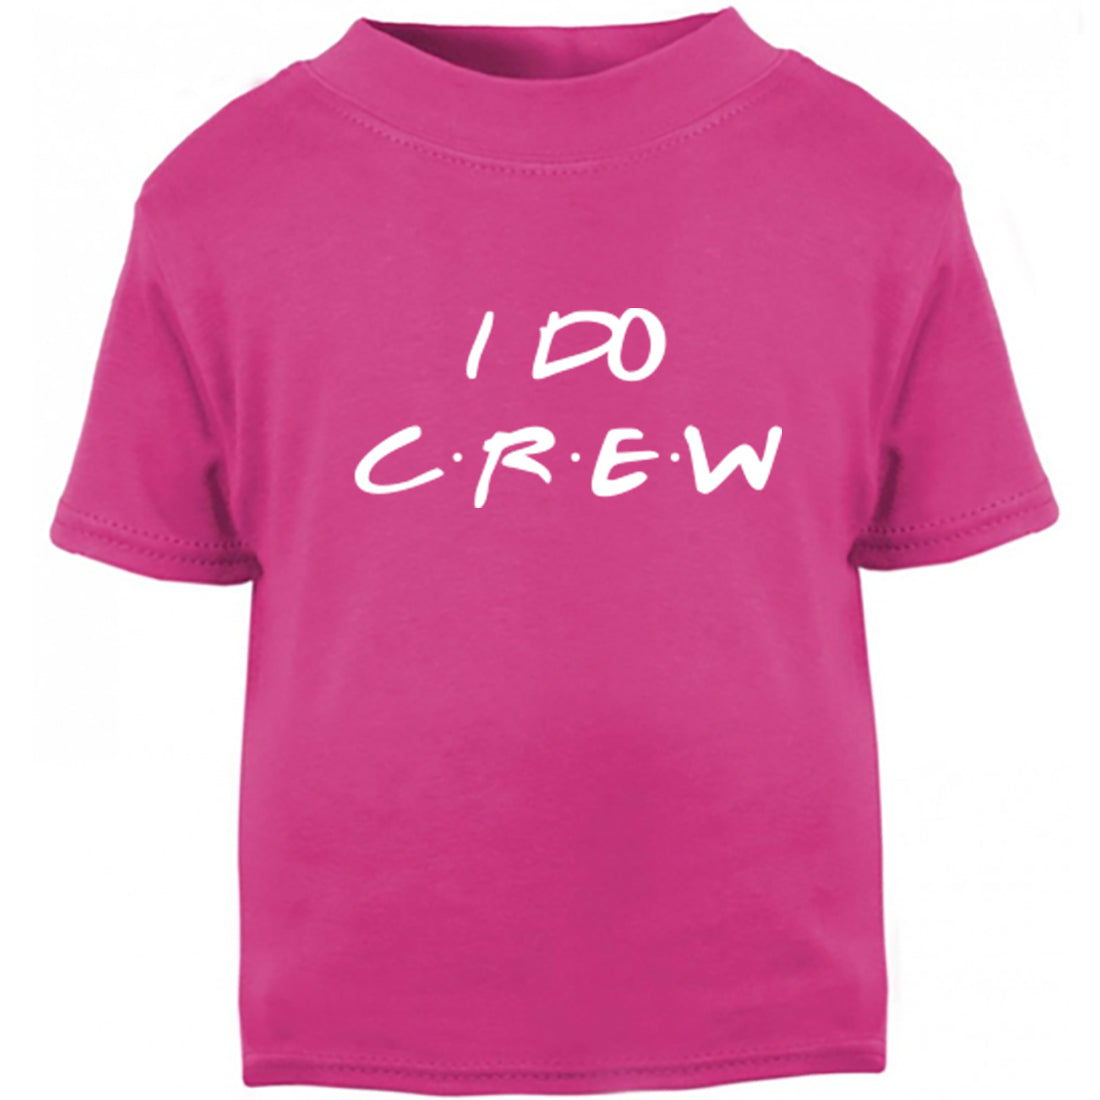 I Do Crew Childrens Ages 3/4-12/14 Unisex Fit T-Shirt K2381